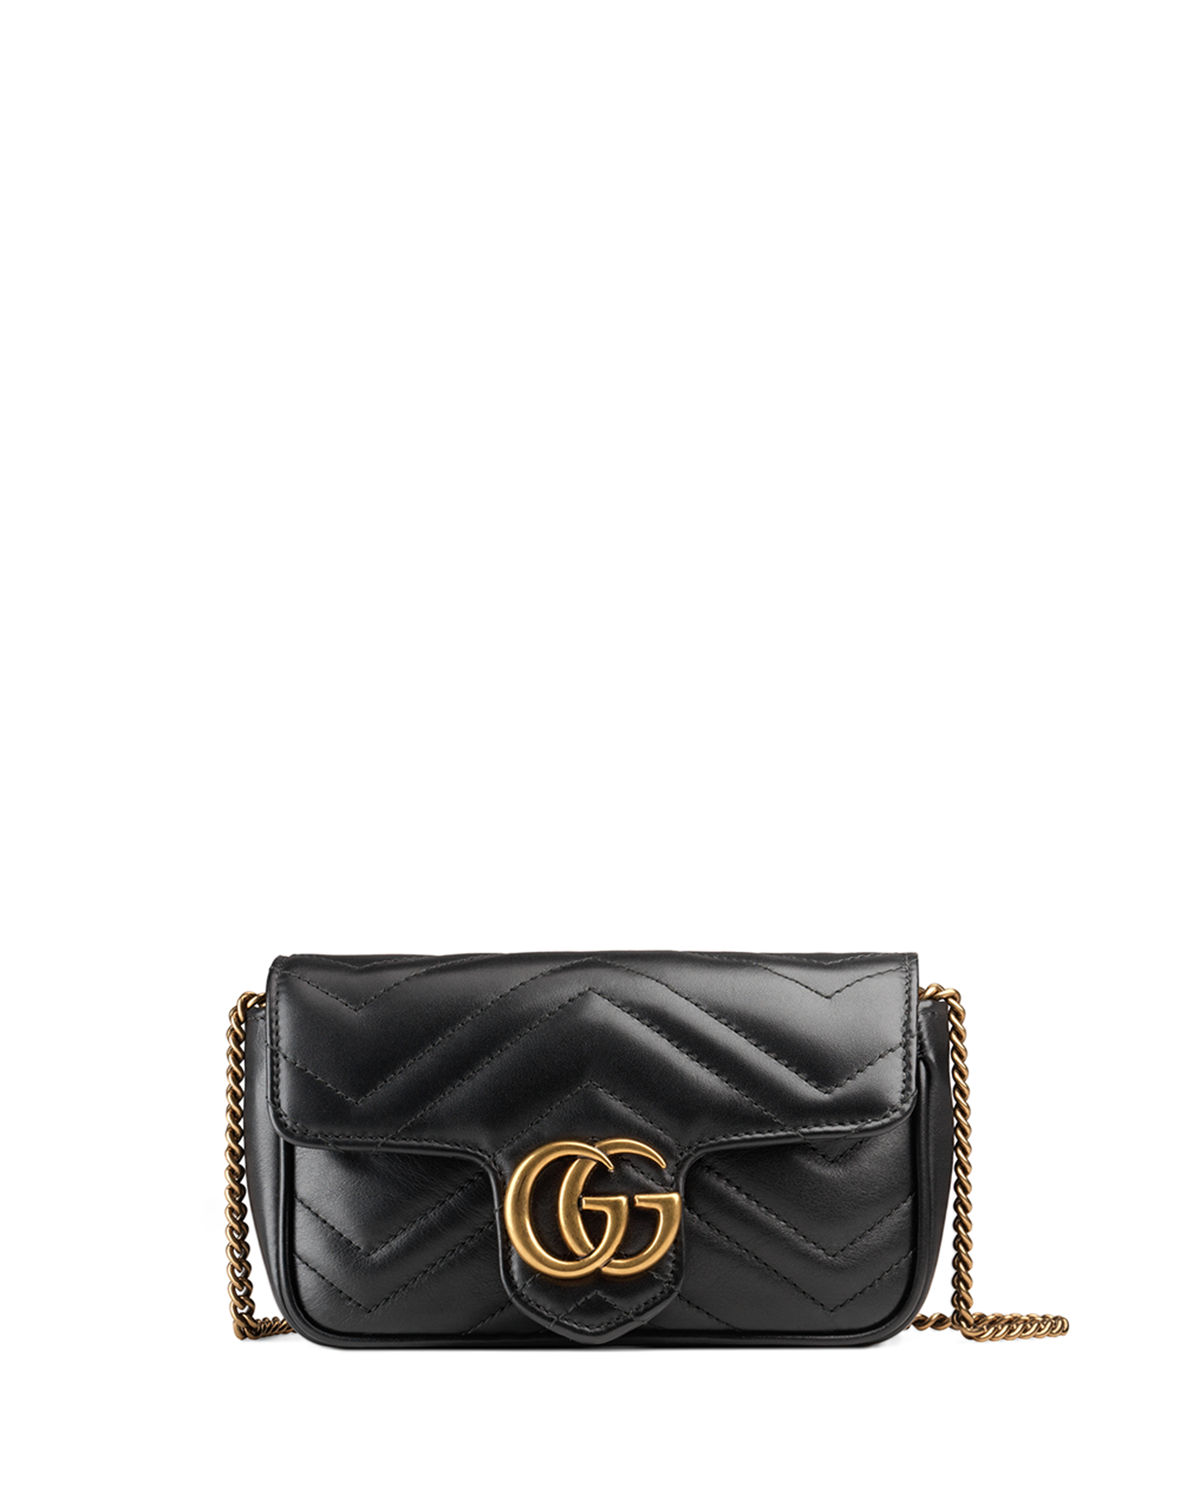 294c5435f97 Gucci GG Marmont Matelasse Leather Super Mini Bag